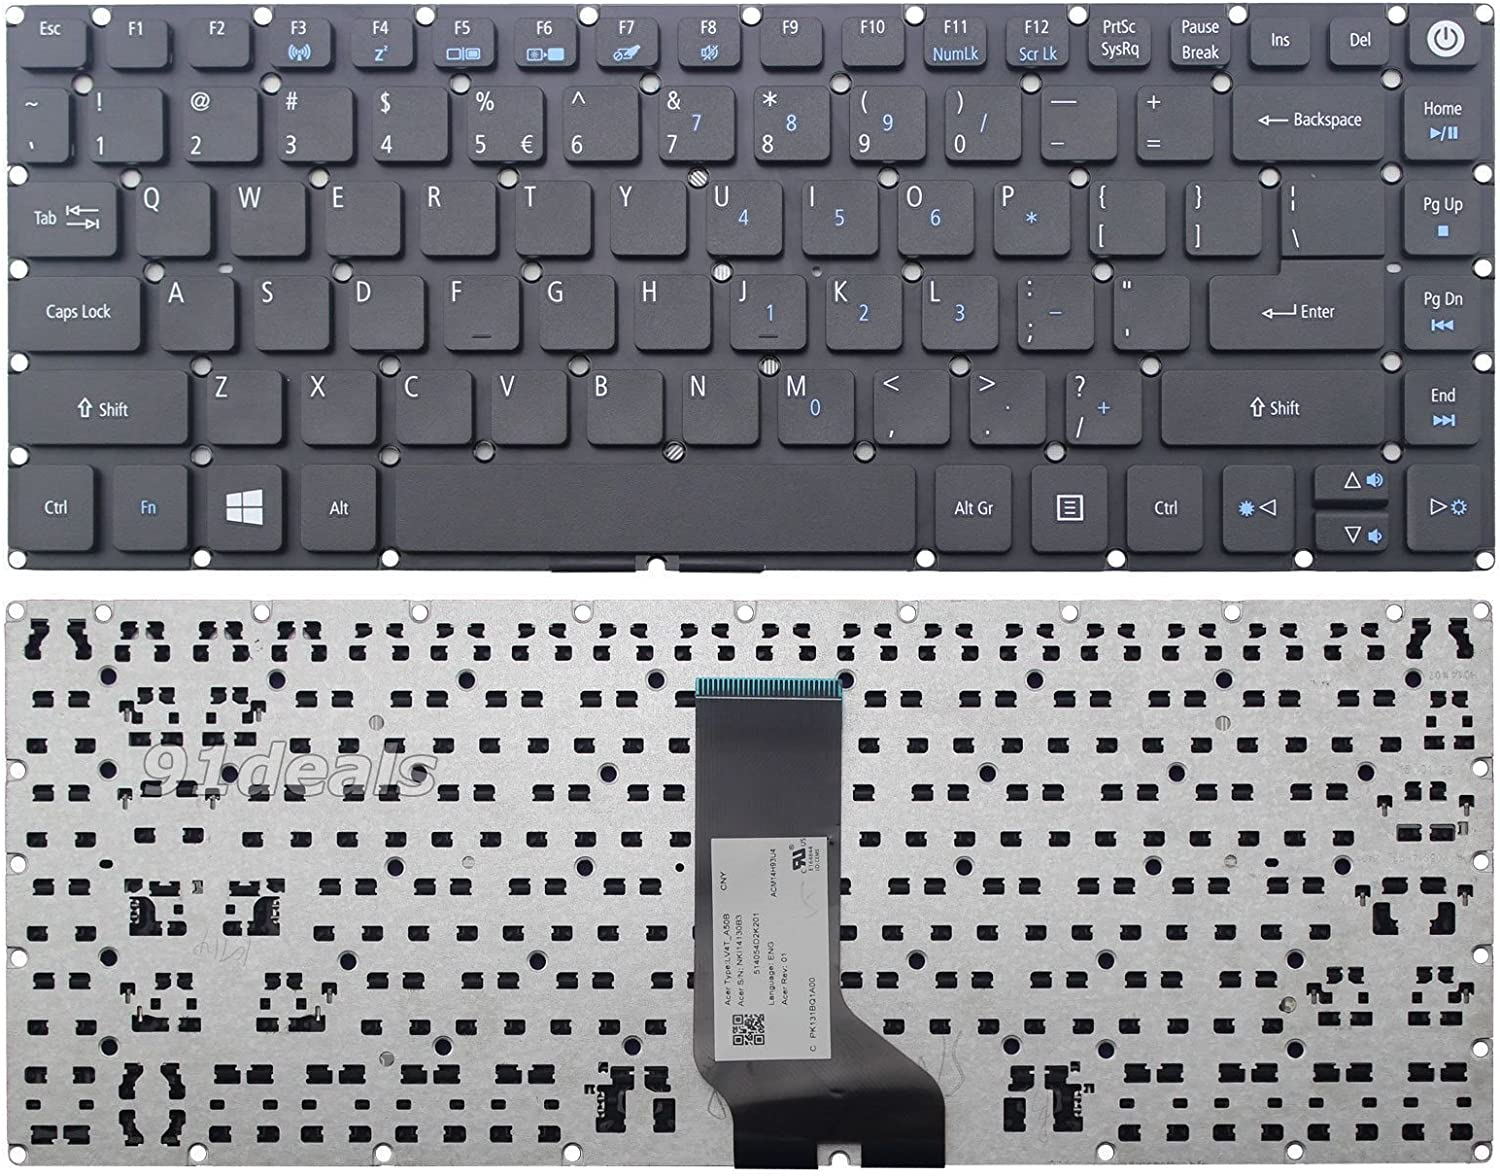 New Laptop Replacement Keyboard for ACER Aspire E5-471 E5-471G E5-471P E5-471G E5-472G E5-473G E5-473T E5-473TG Series US Layout LV4T_A50B NK114130B3 Black E5-473